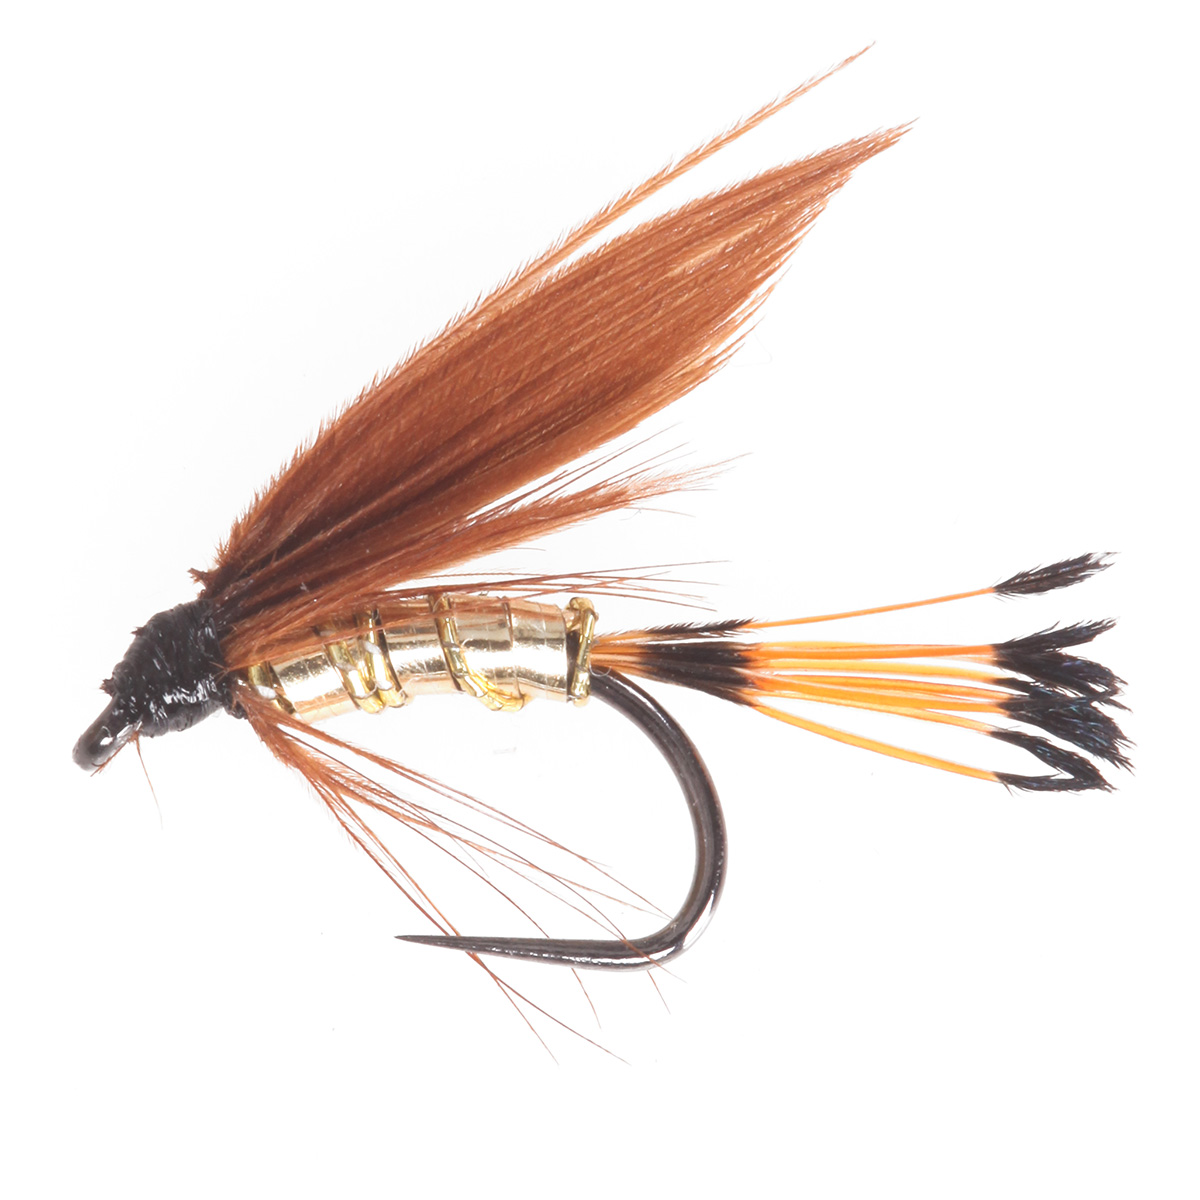 Cinamon and gold fishing wet flies ebay for Wet fly fishing